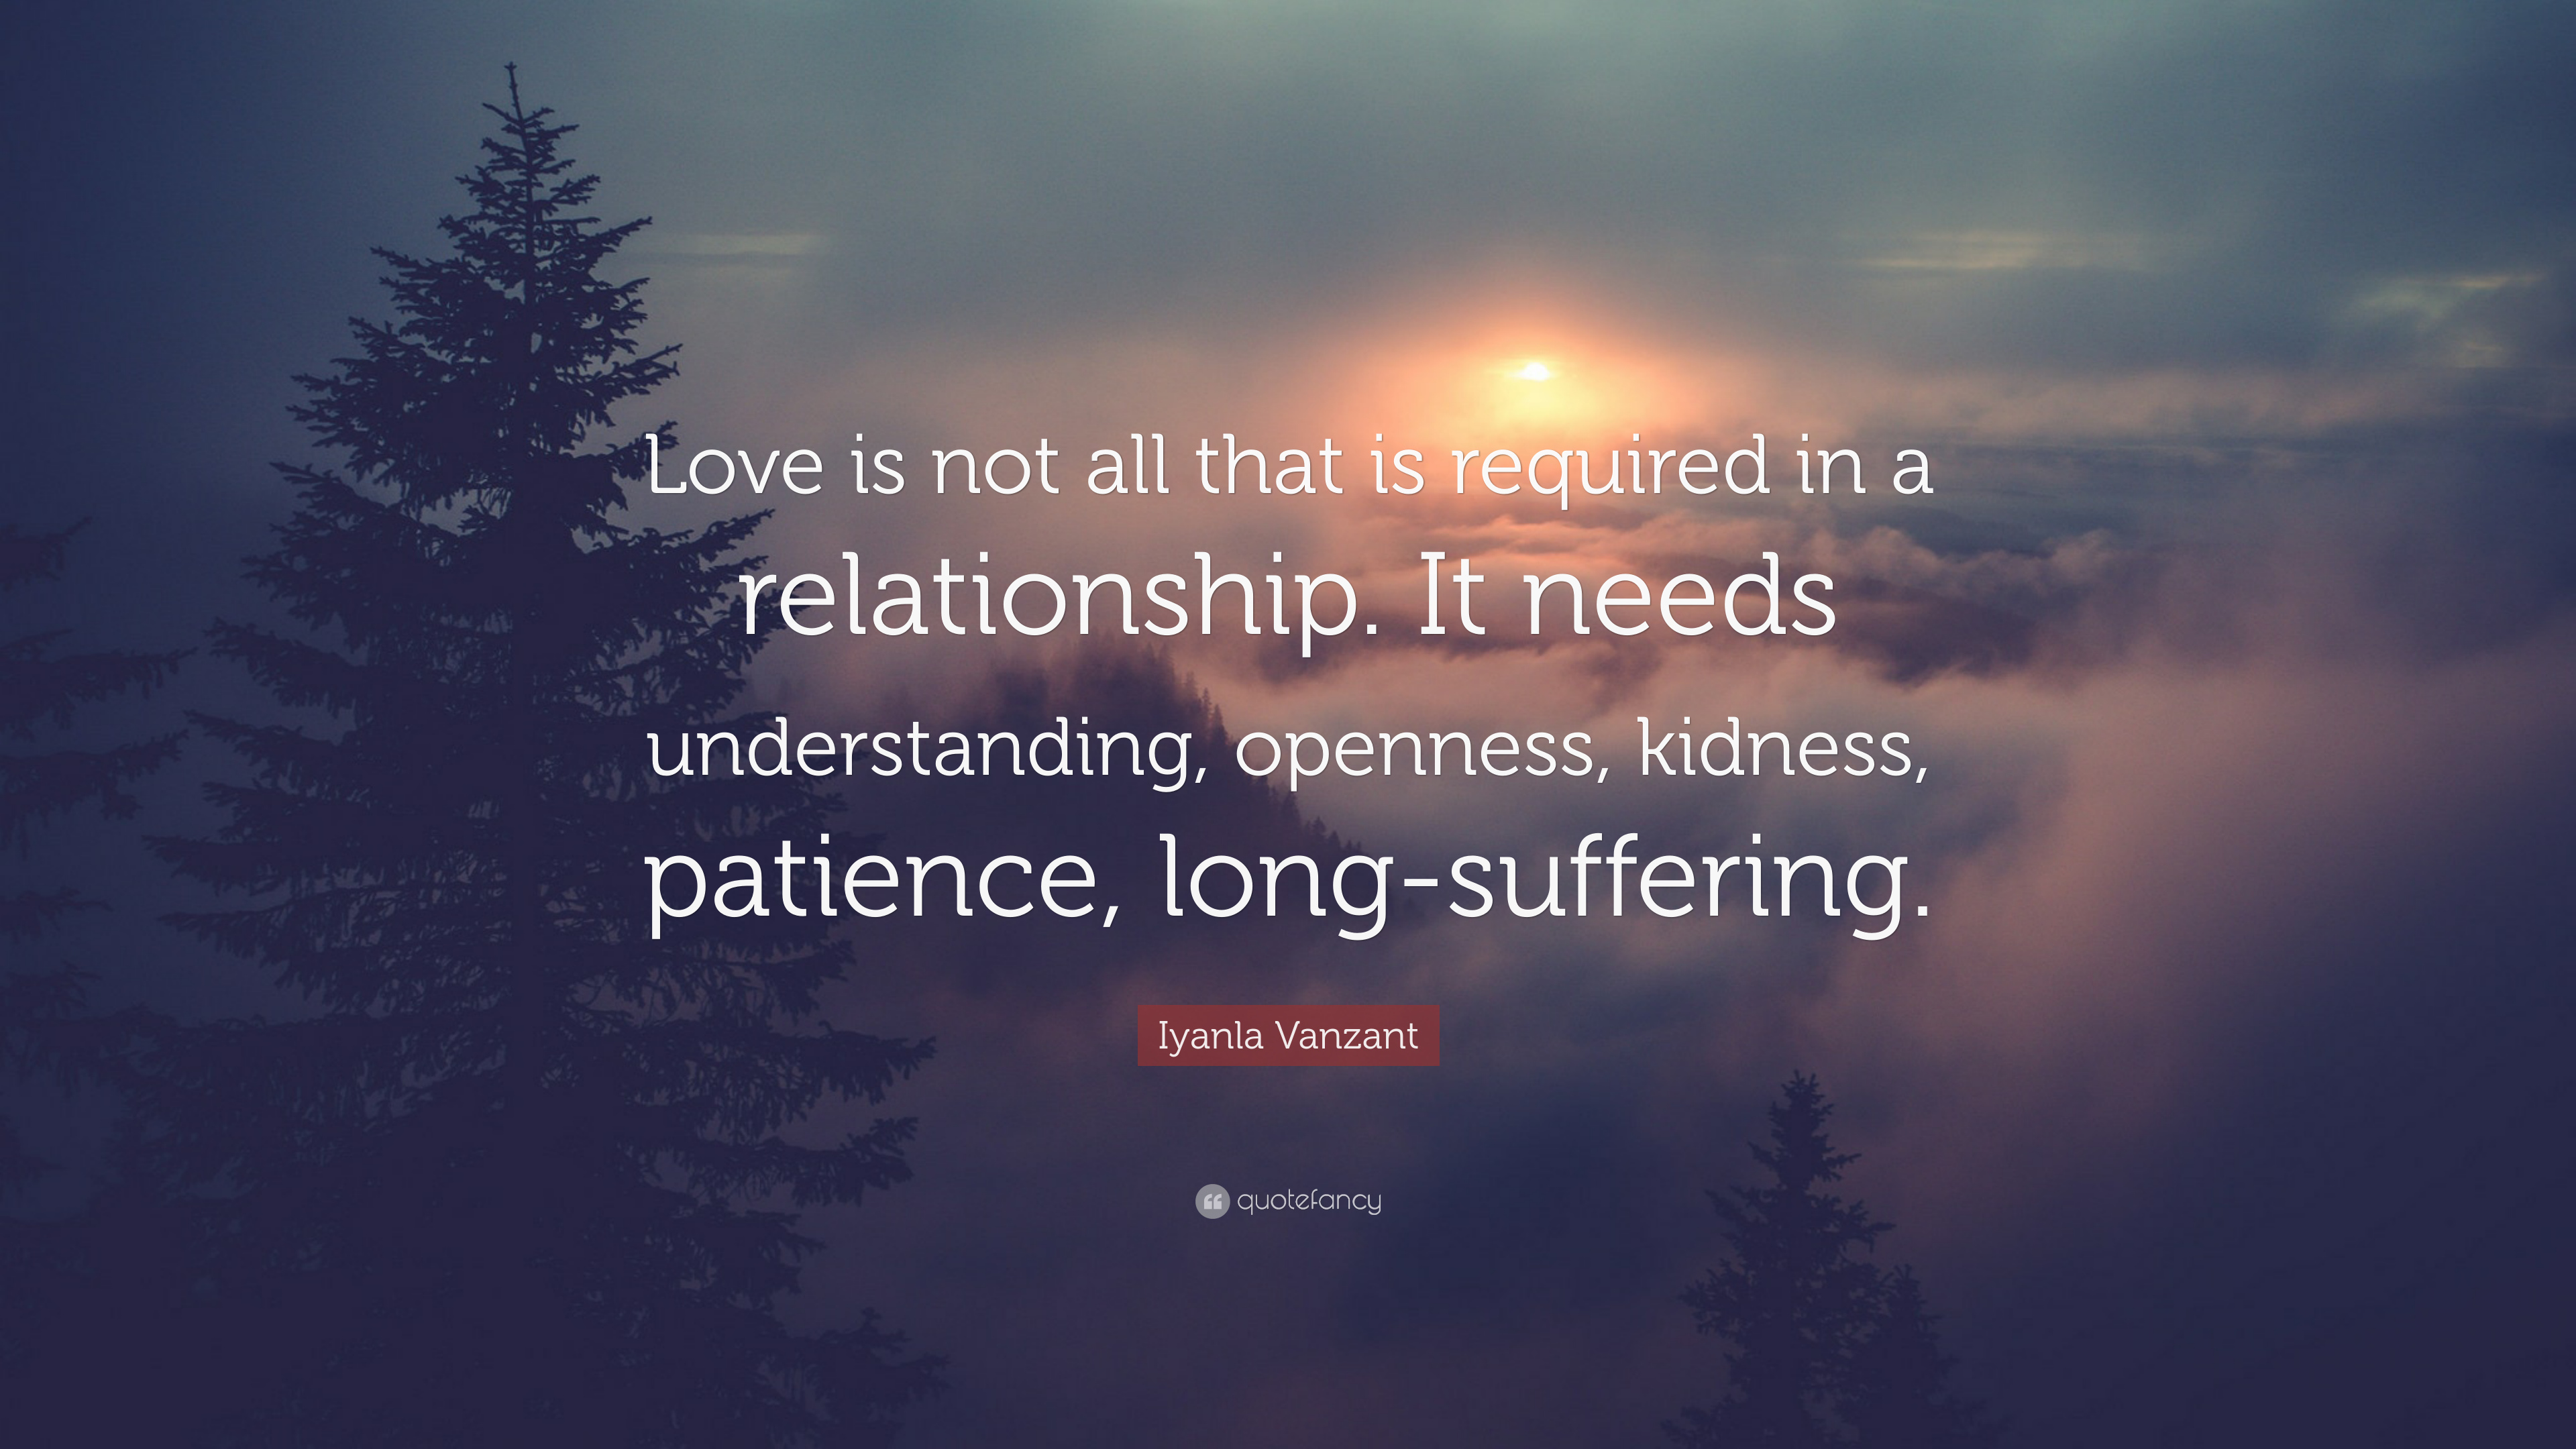 Quotes About Understanding In A Relationship 5